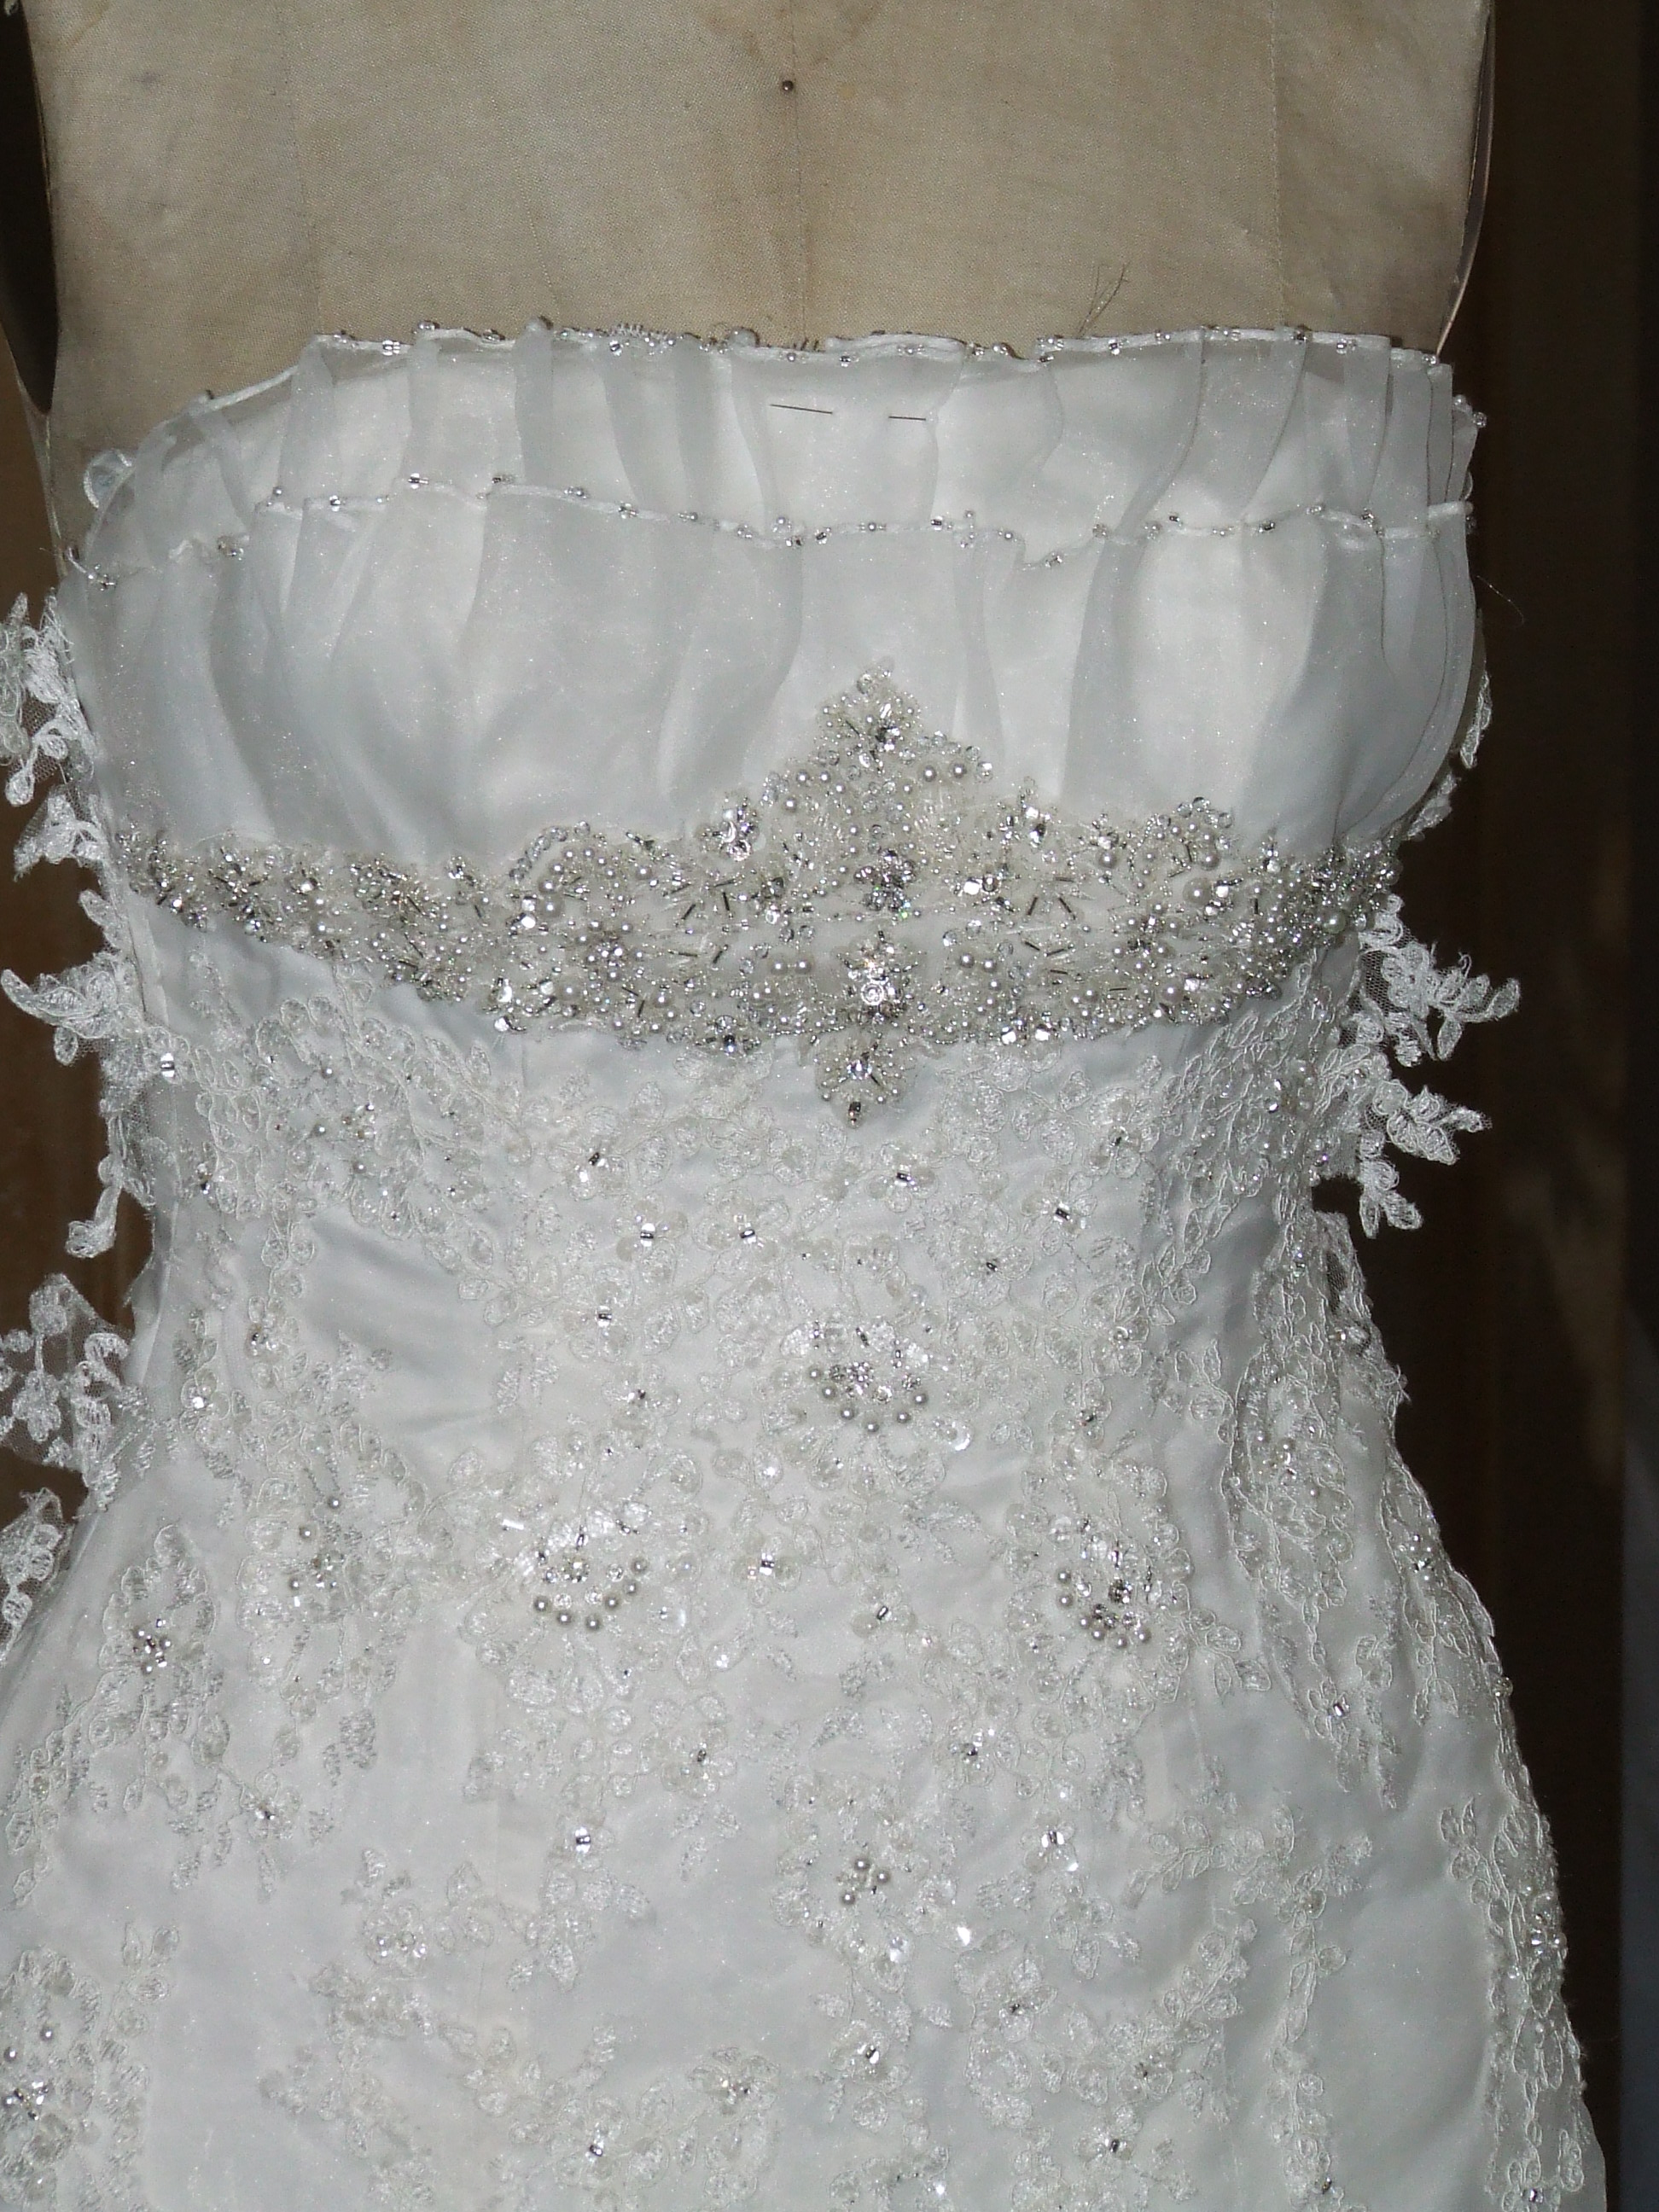 Lace Wedding Gown alterations 002 - Barbara Stone Designs